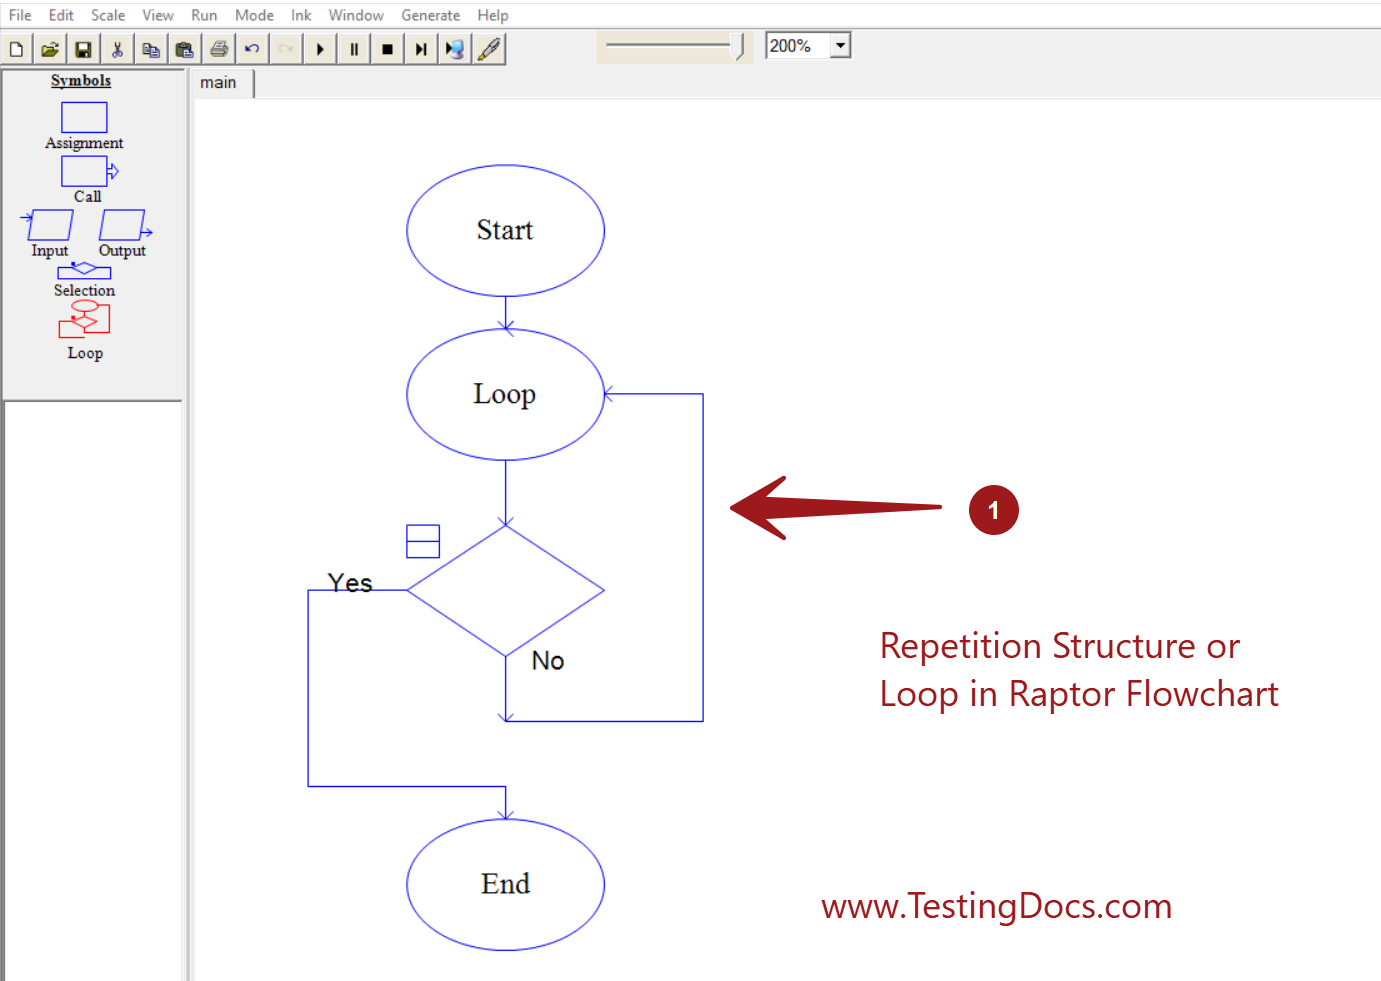 Reptition Structure